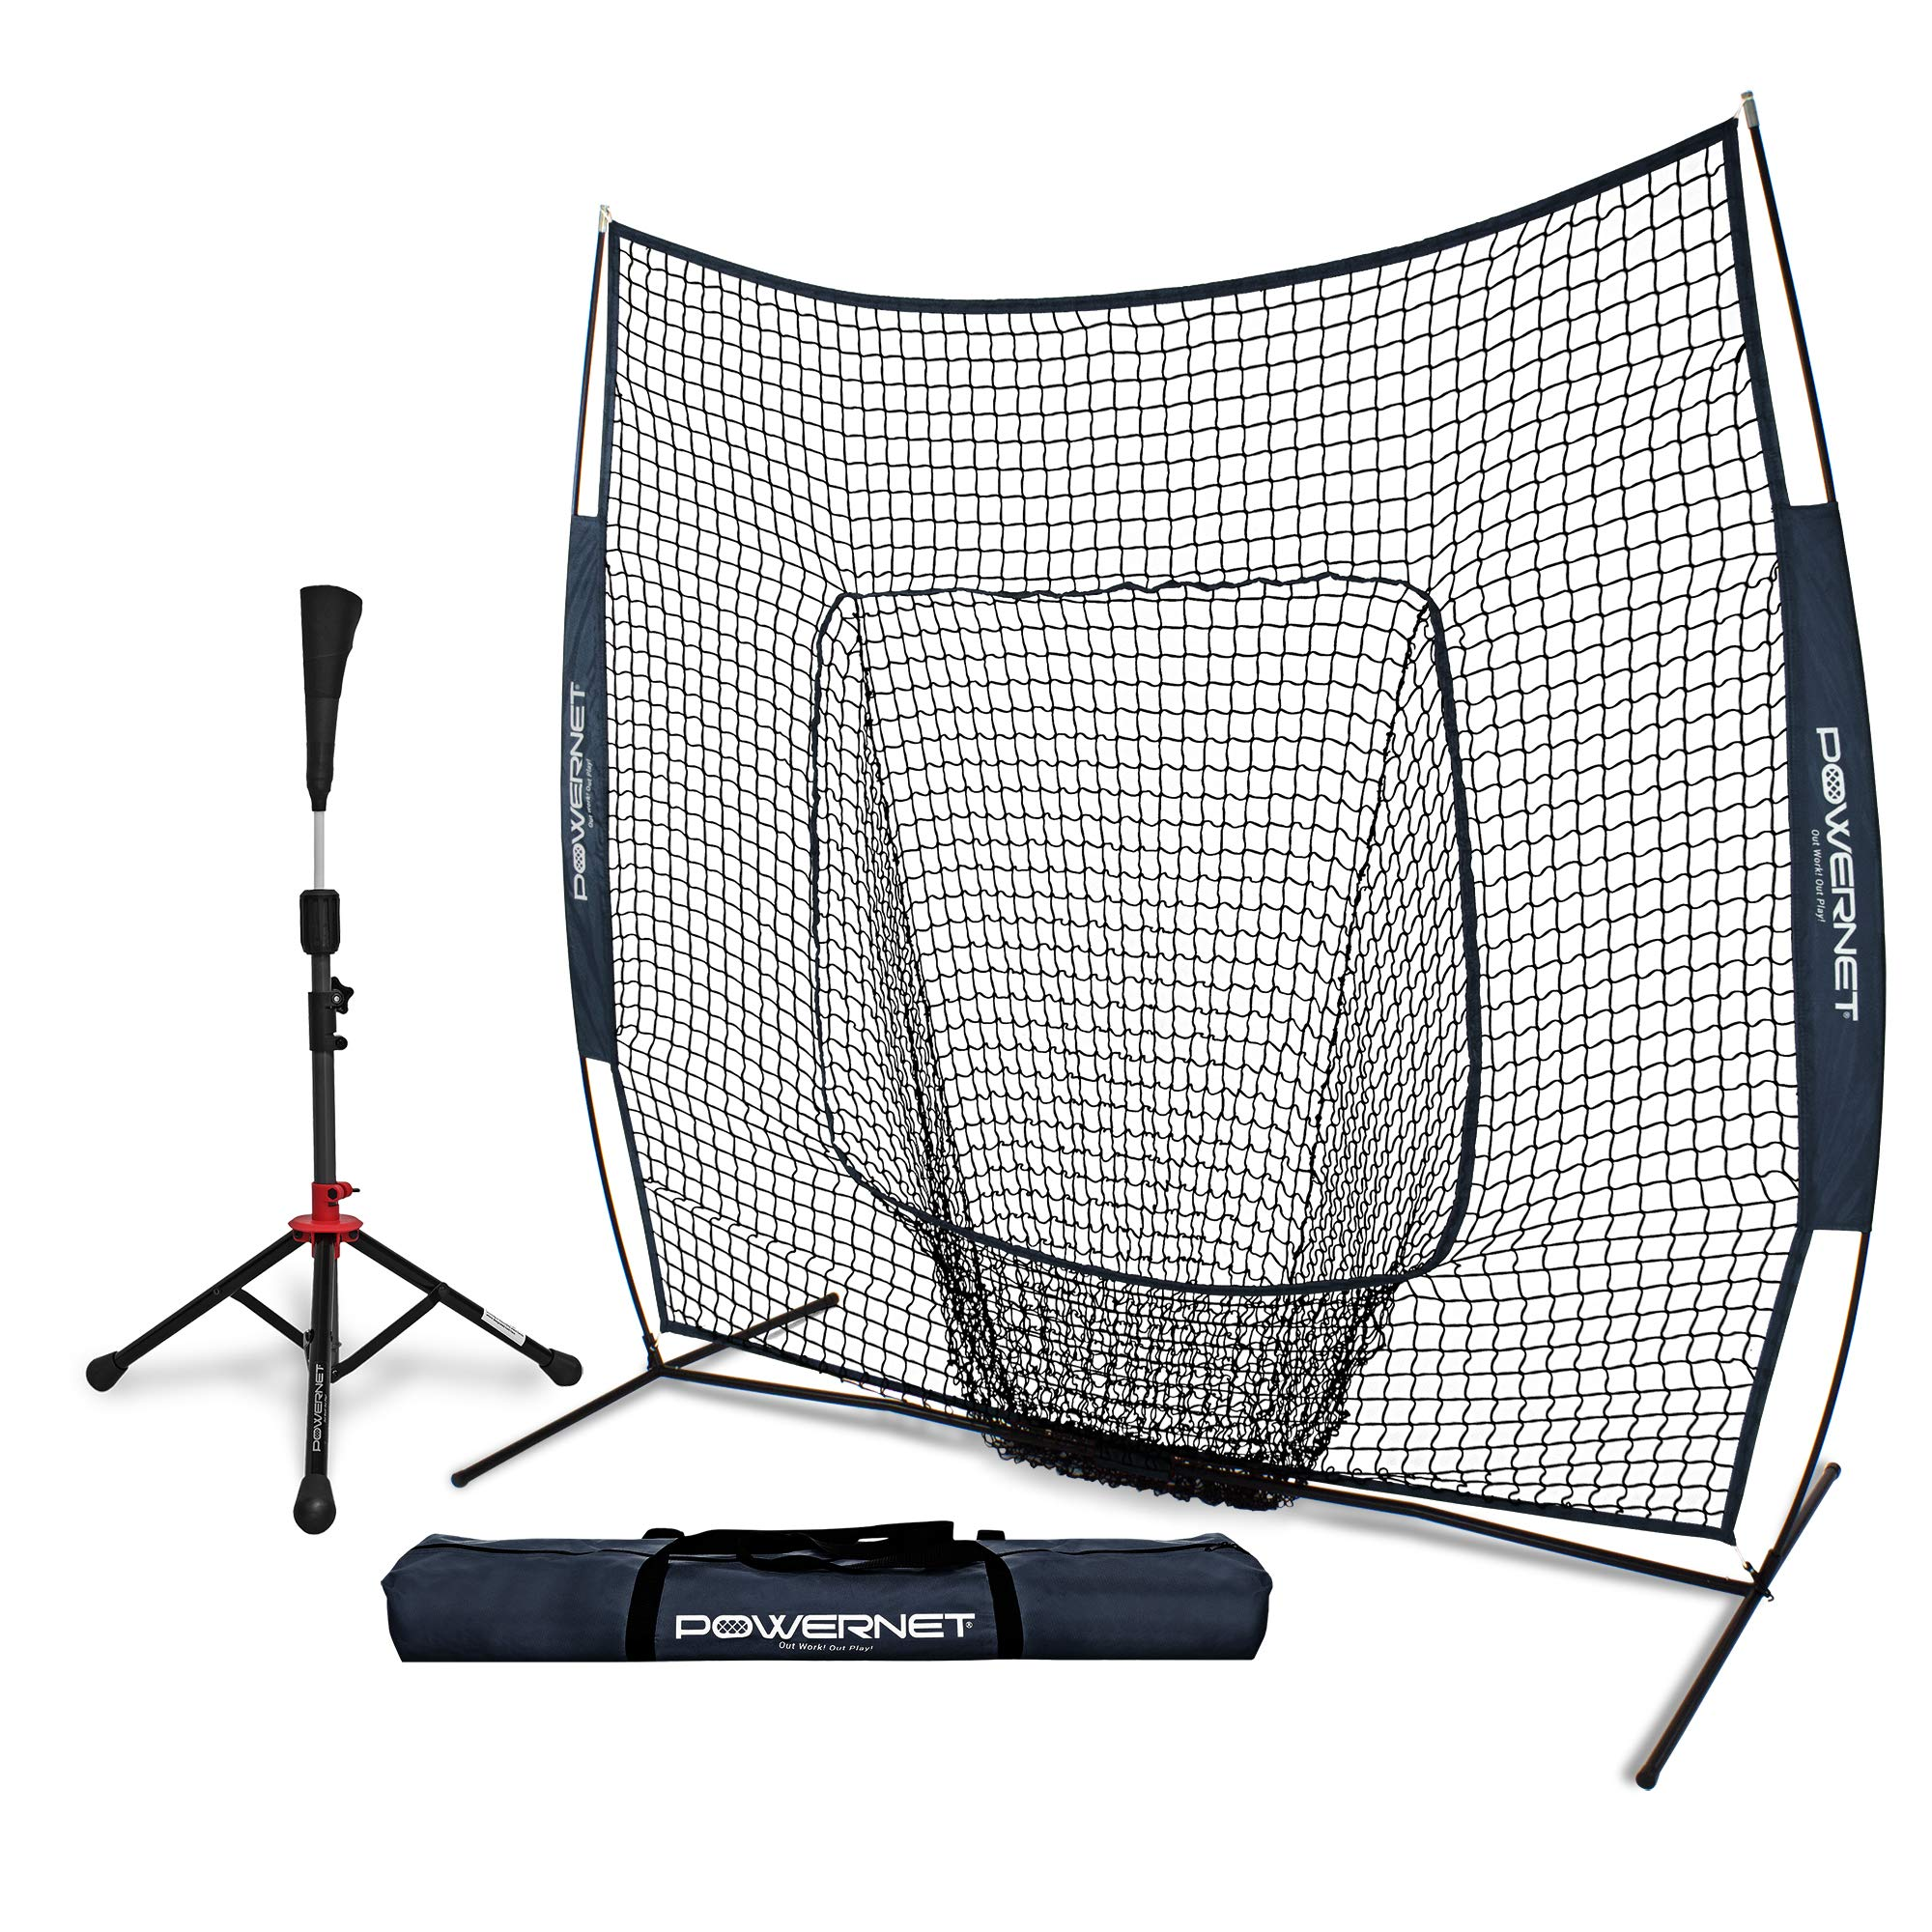 PowerNet Baseball Softball Practice Net 7x7 with Deluxe Tee (Navy) | Practice Hitting, Pitching, Batting, Fielding | Portable, Backstop, Training Aid, Lg Mouth, Bow Frame | Training Equipment Bundle by PowerNet